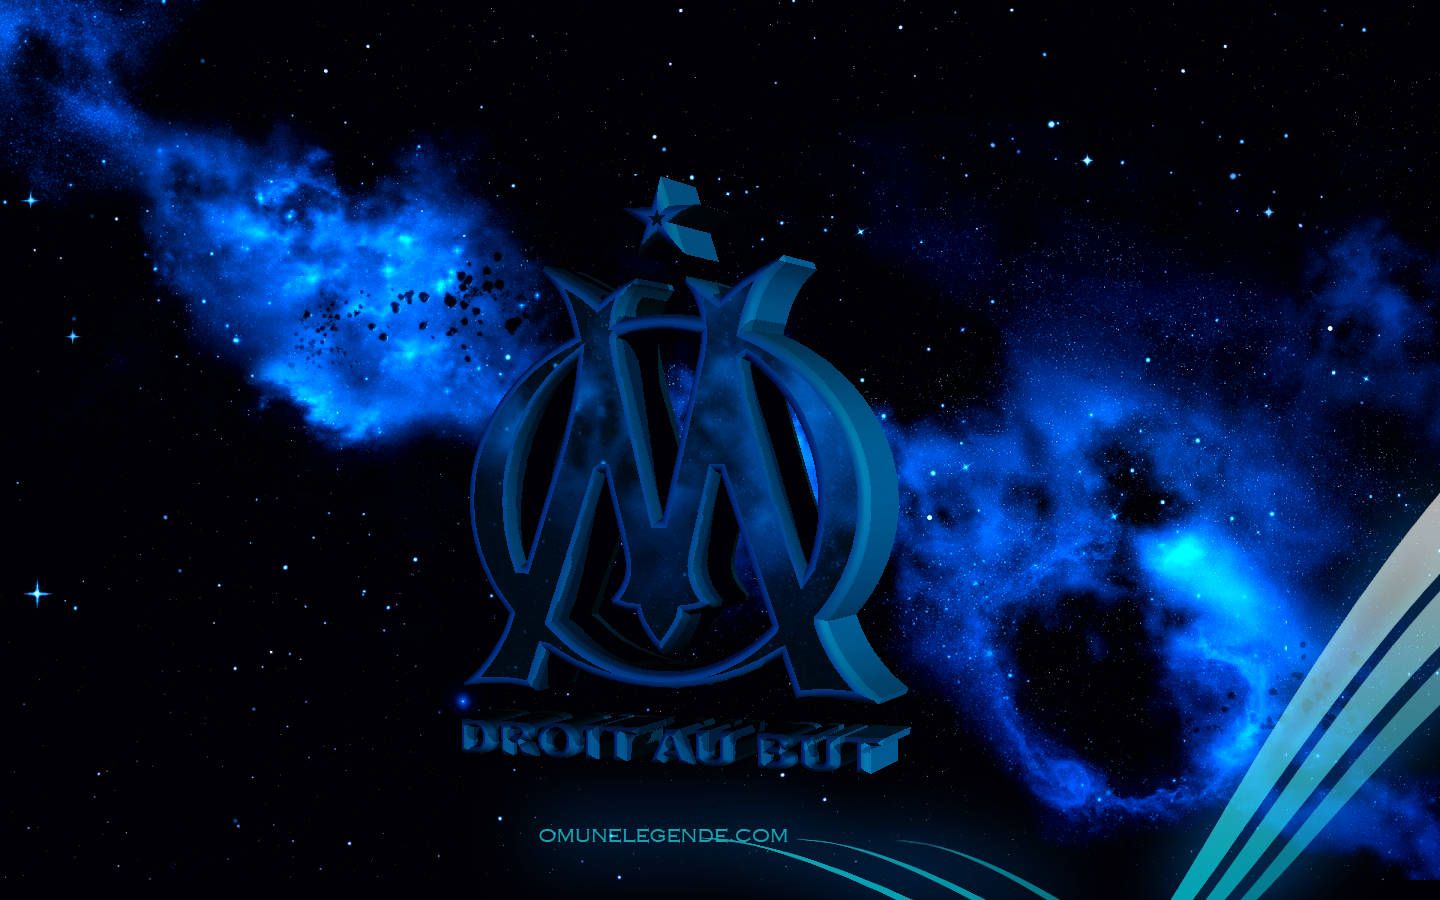 Olympique de marseille wallpapers wallpapersafari - Marseille logo foot ...